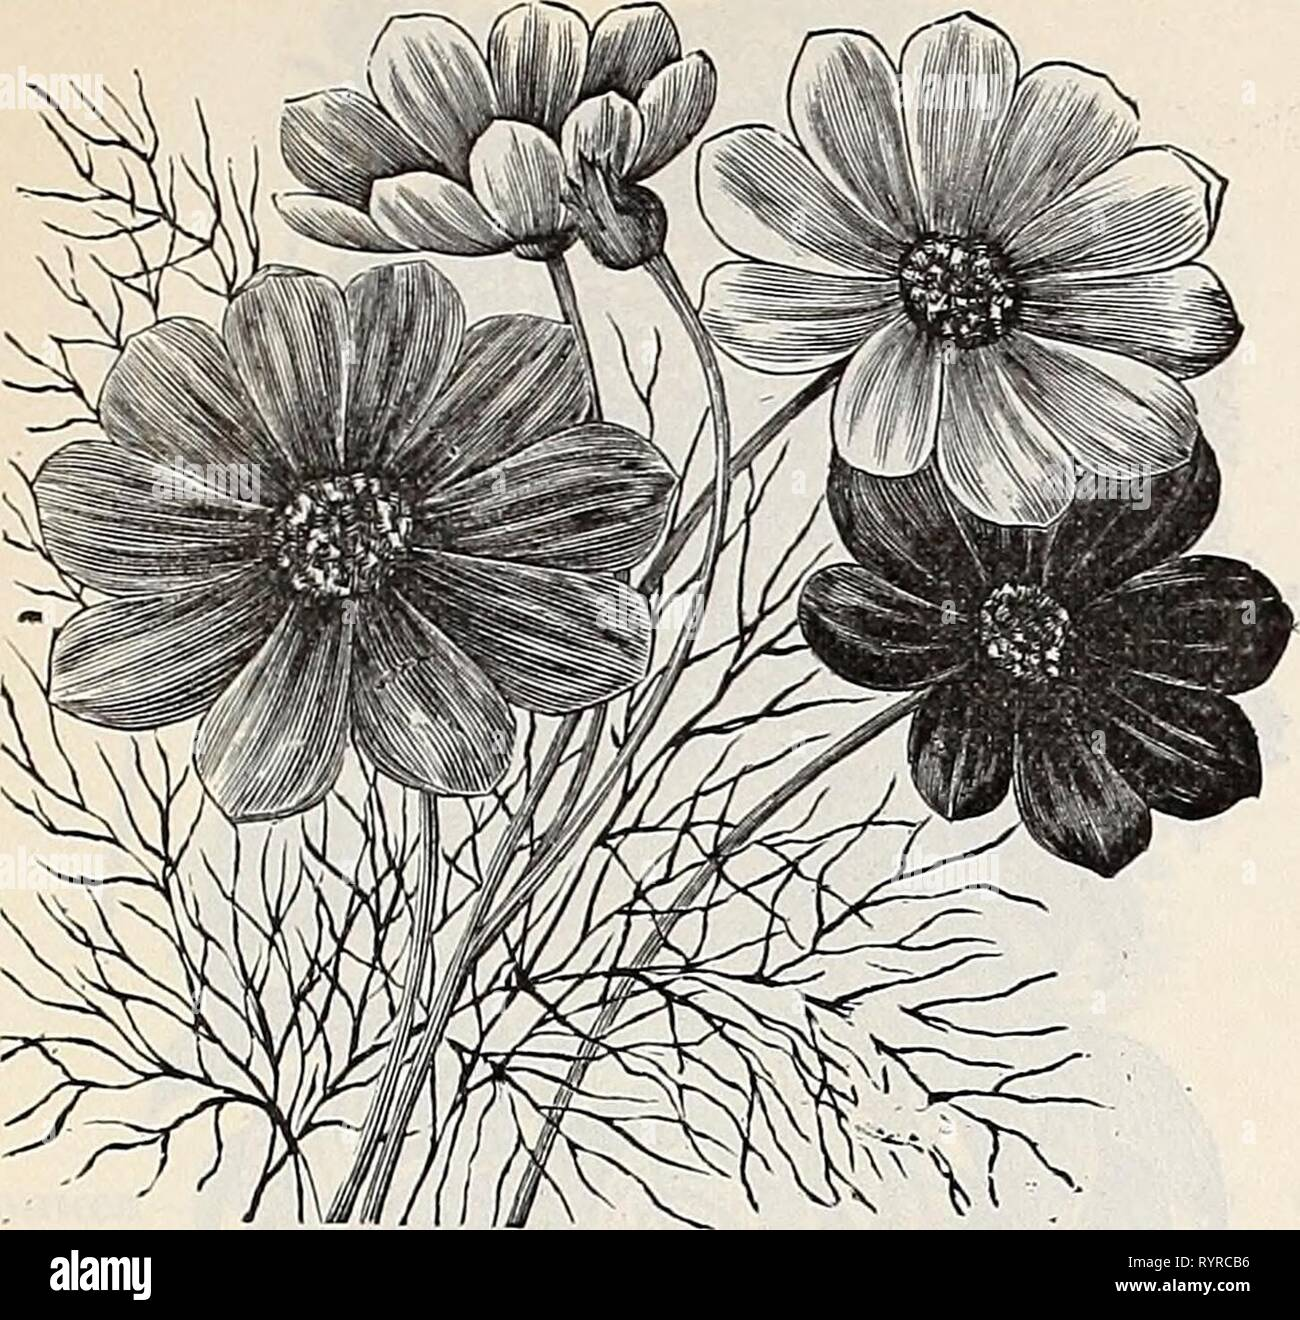 Dreer's quarterly wholesale price list Dreer's quarterly wholesale price list of reliable seeds, plants, bulbs &c . dreersquarterlyw1899henr Year: 1899  DREER'S RELIABLE FLOWER SEEDS. 13    (Jos-Mos, Labge Flowering. Convolvulus major, mixed {Morning Glory) lb. 35 cts. major double minor mixed {Dtuarf Morning Glory) lb. 35 cts yi2xi.rXAmzws>, fine basket plant Cosmos, Giant Perfection crimson â ] greatly im- Tr. pkt Oz. proved strain extra large flowers . . Giant Perfection pink . ' ' white. ' ' mixed Large Flowering ordinary mixed . . . . . Dwarf Early Flowering '' Dawn ' ' ' ' mixed Cows - Stock Image